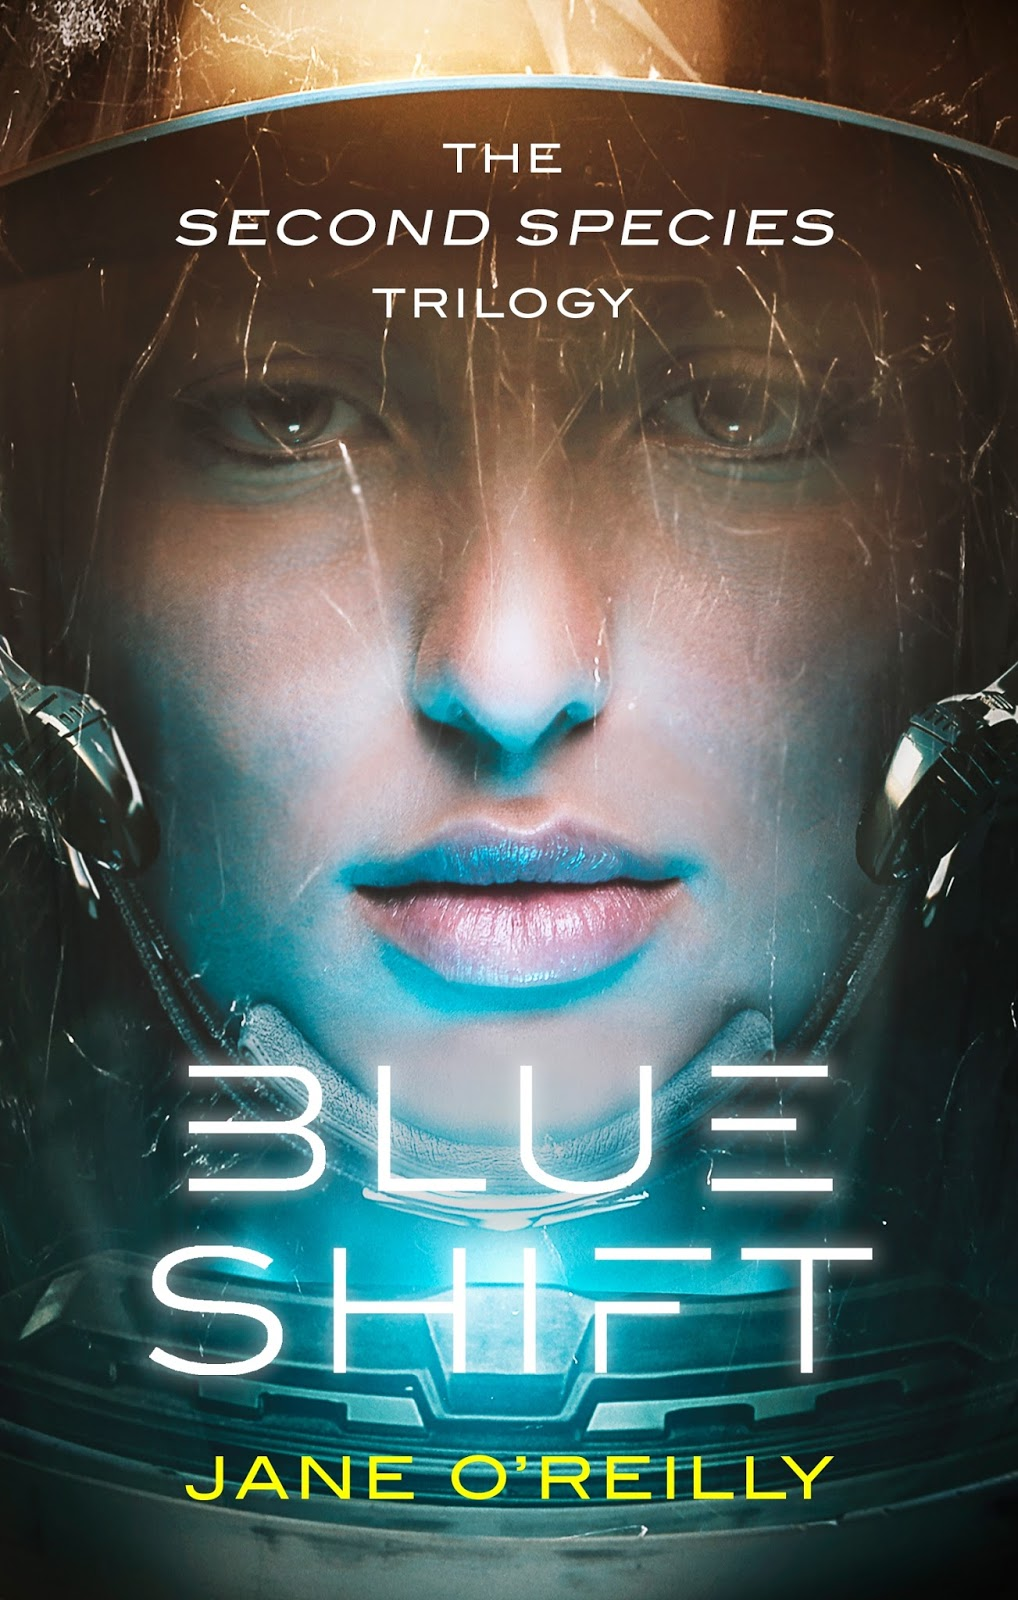 The inspiration behind Blue Shift